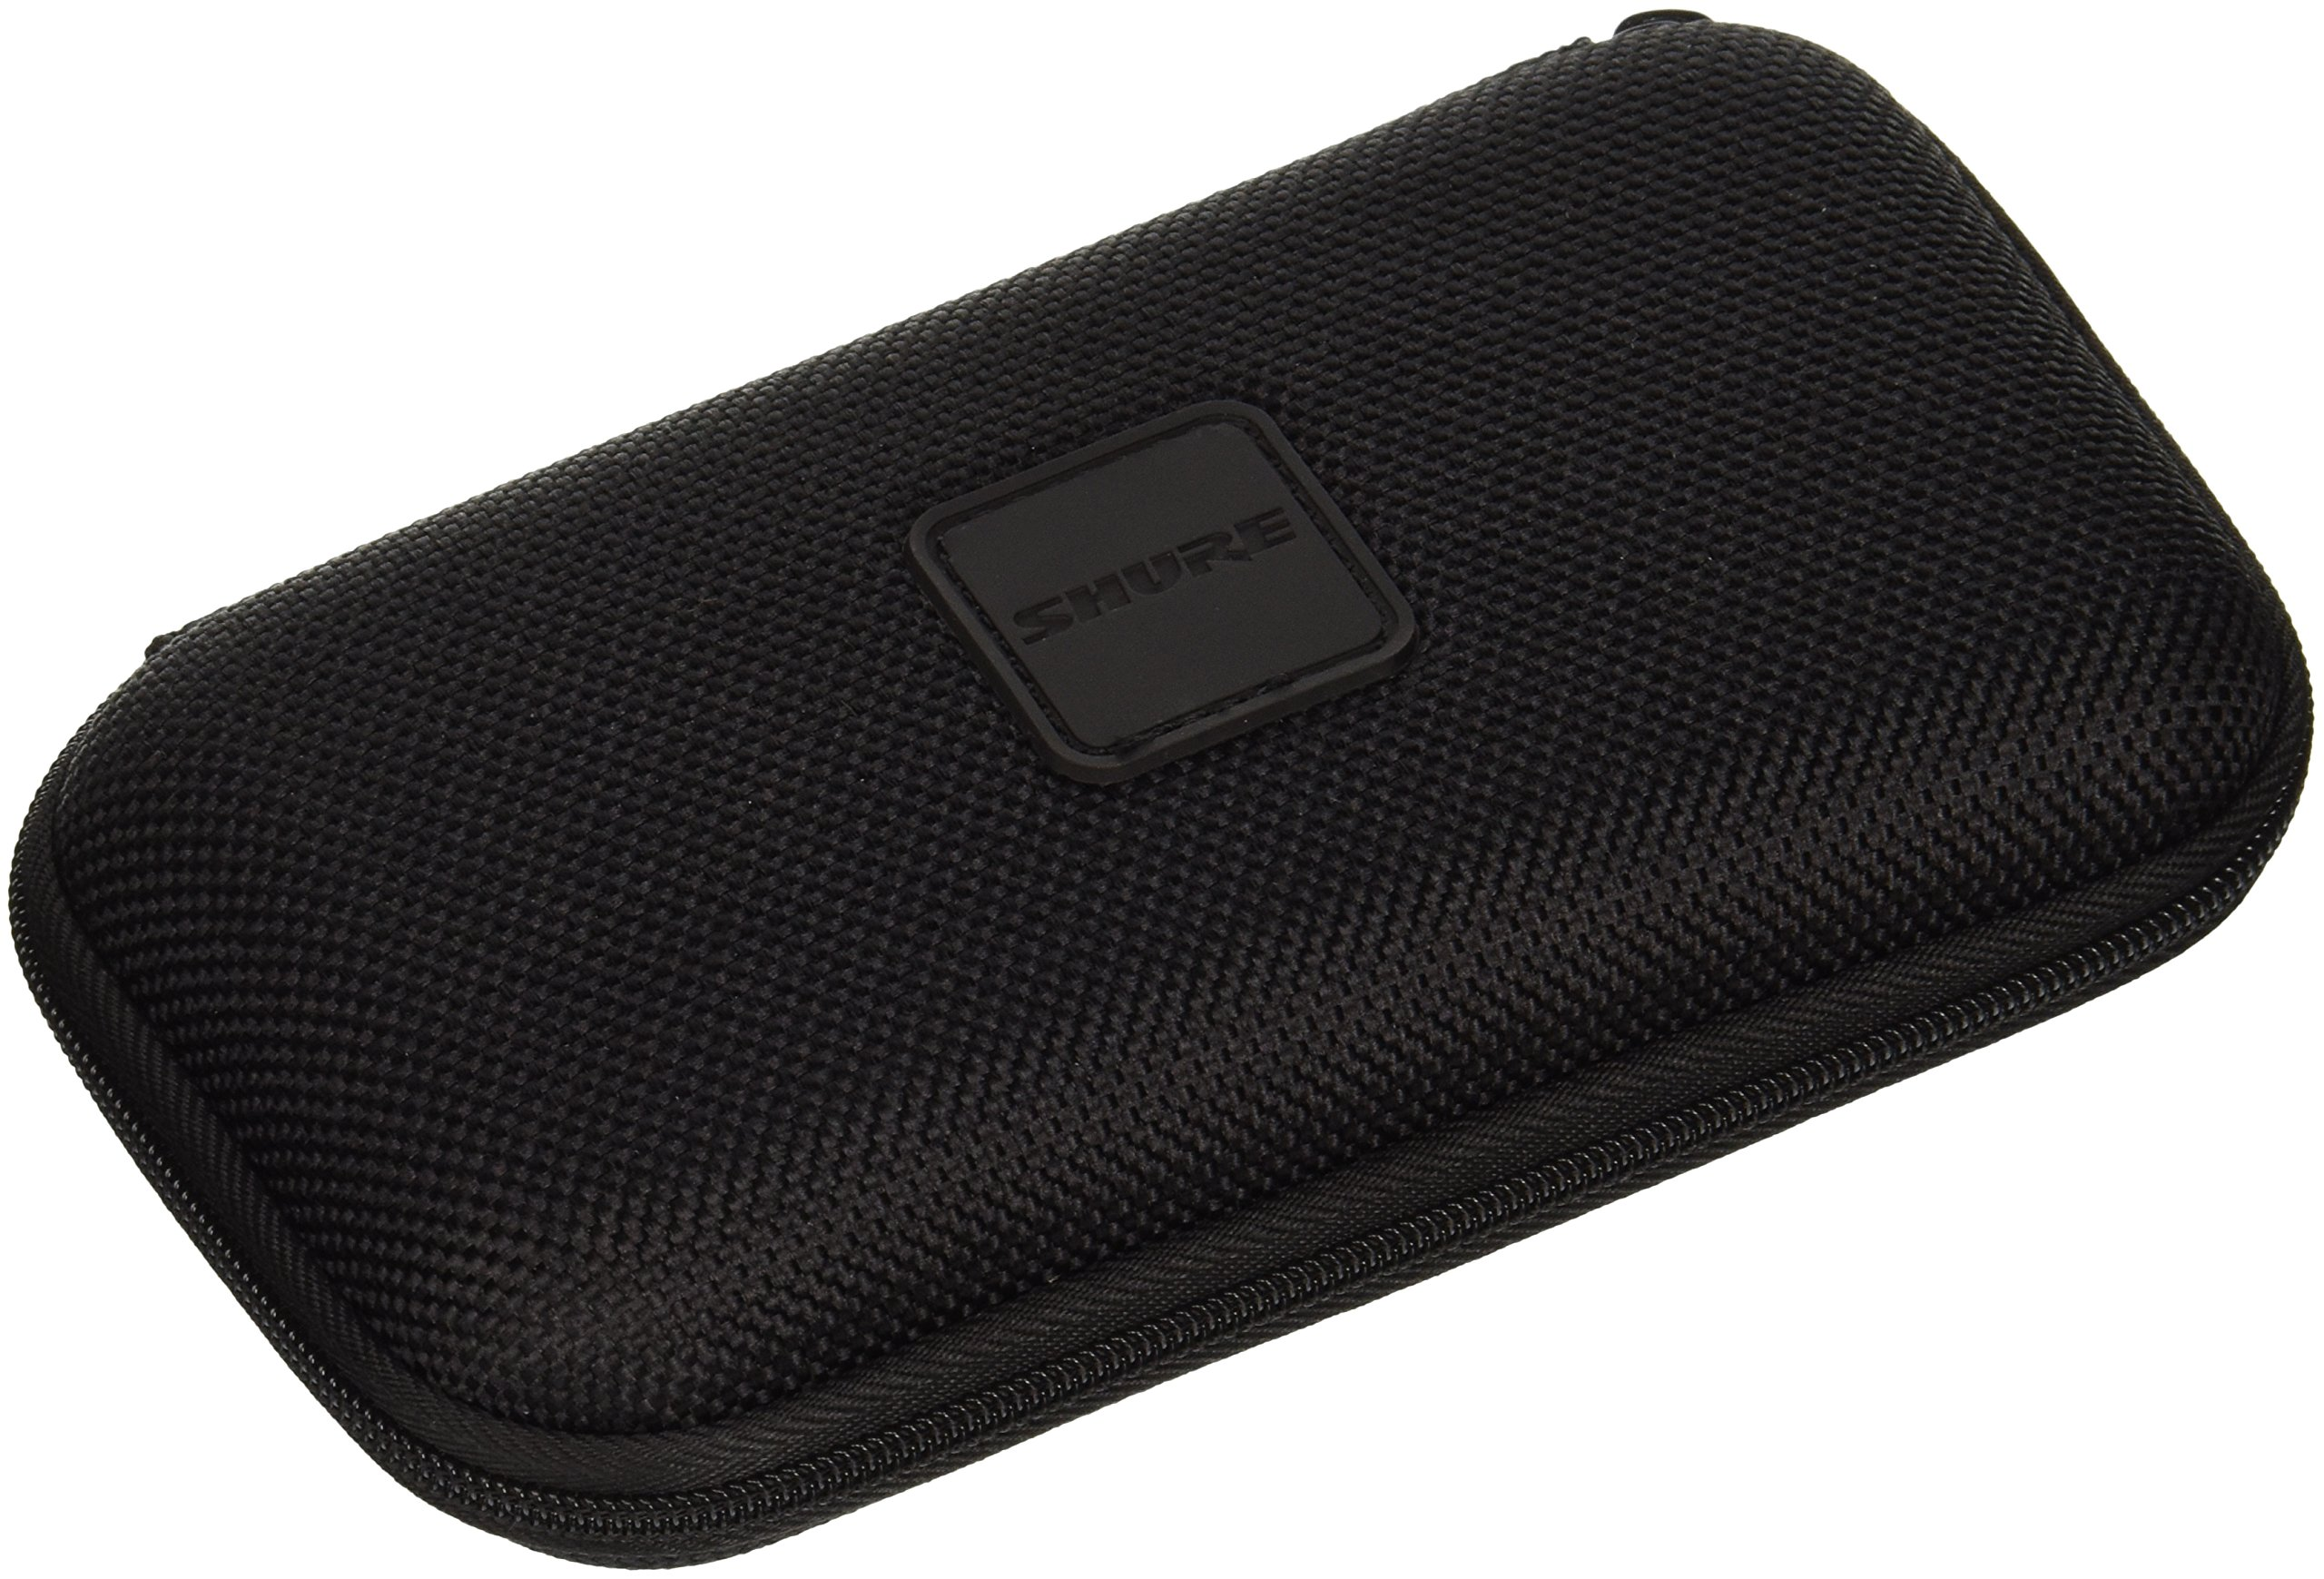 Shure WA153 Storage Pouch for MX153